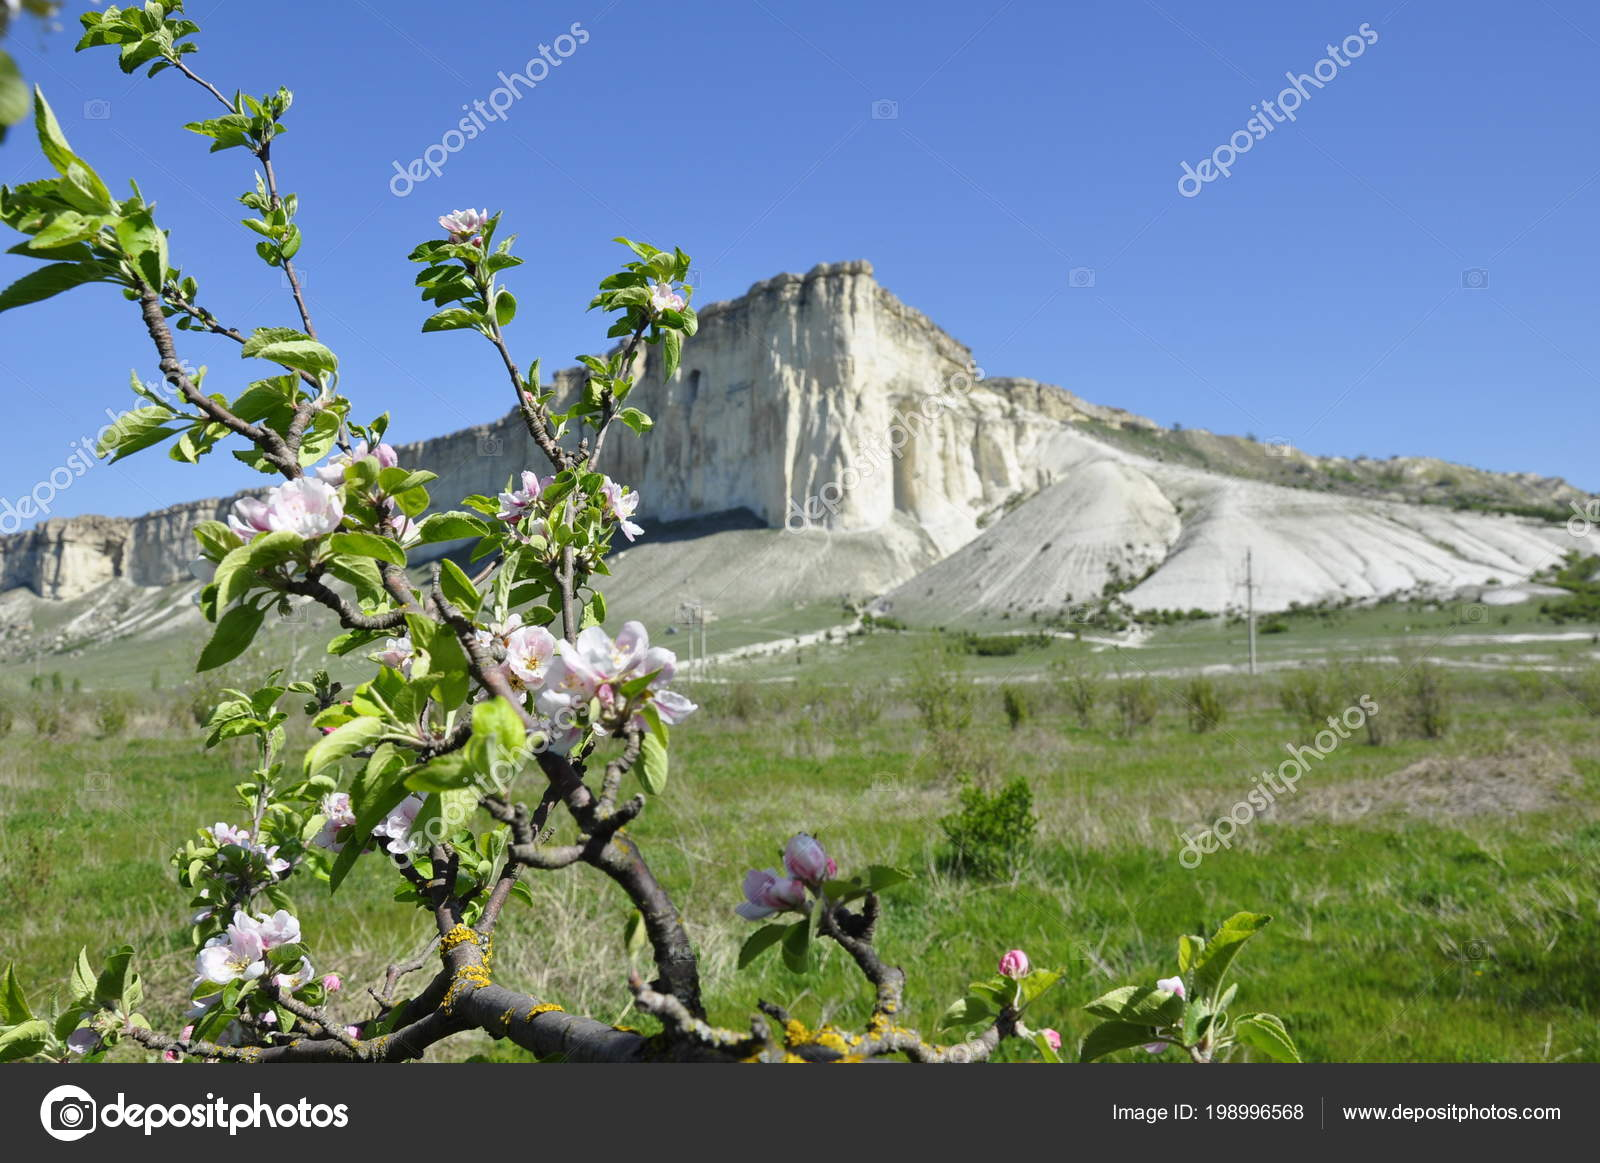 Mountain View Flowers Blooming Apple Tree Crimea White Rock Pink